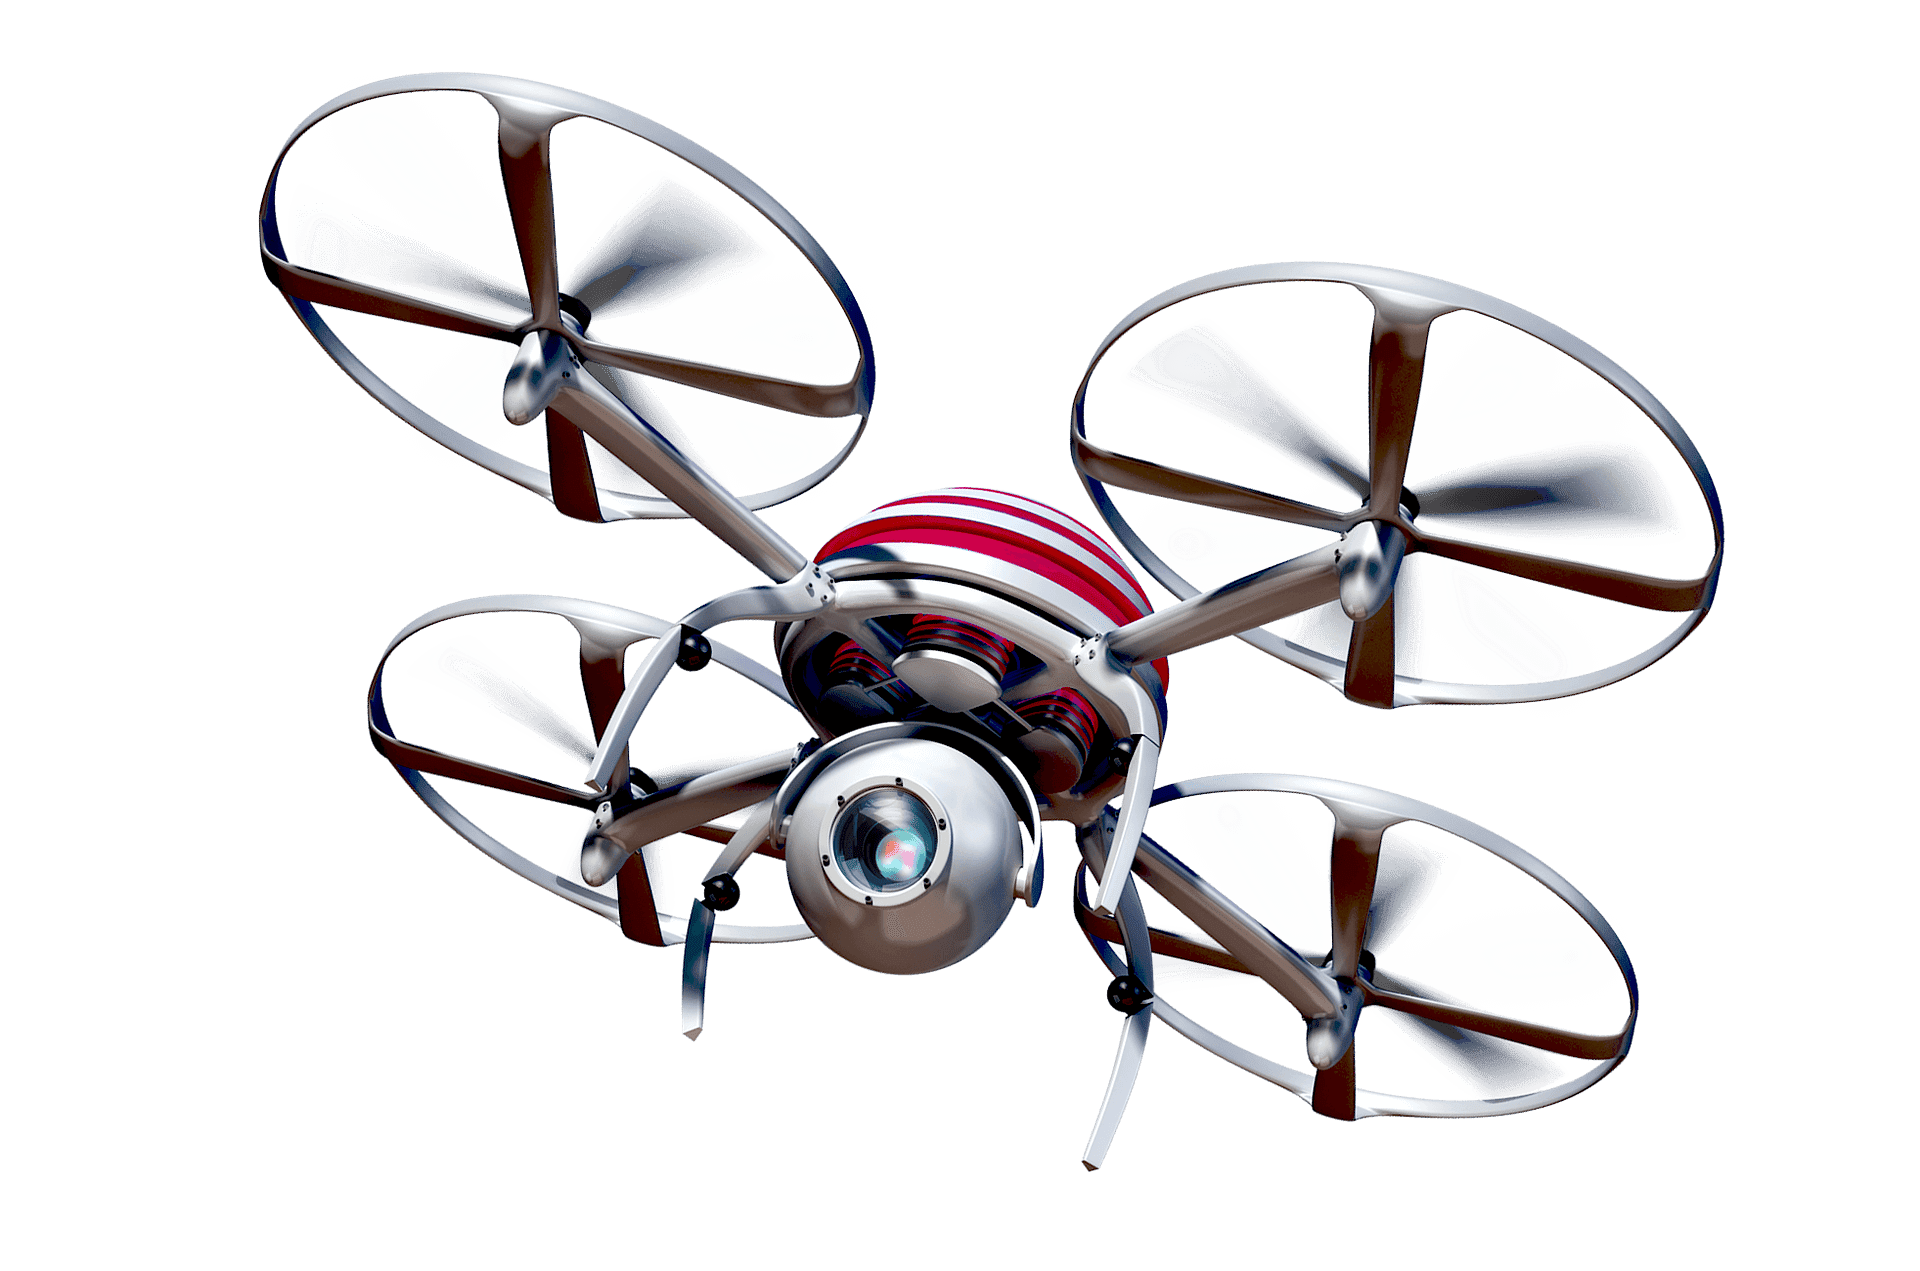 content/en-ae/images/repository/isc/2020/a-spy-drone-with-large-camera-lens.png